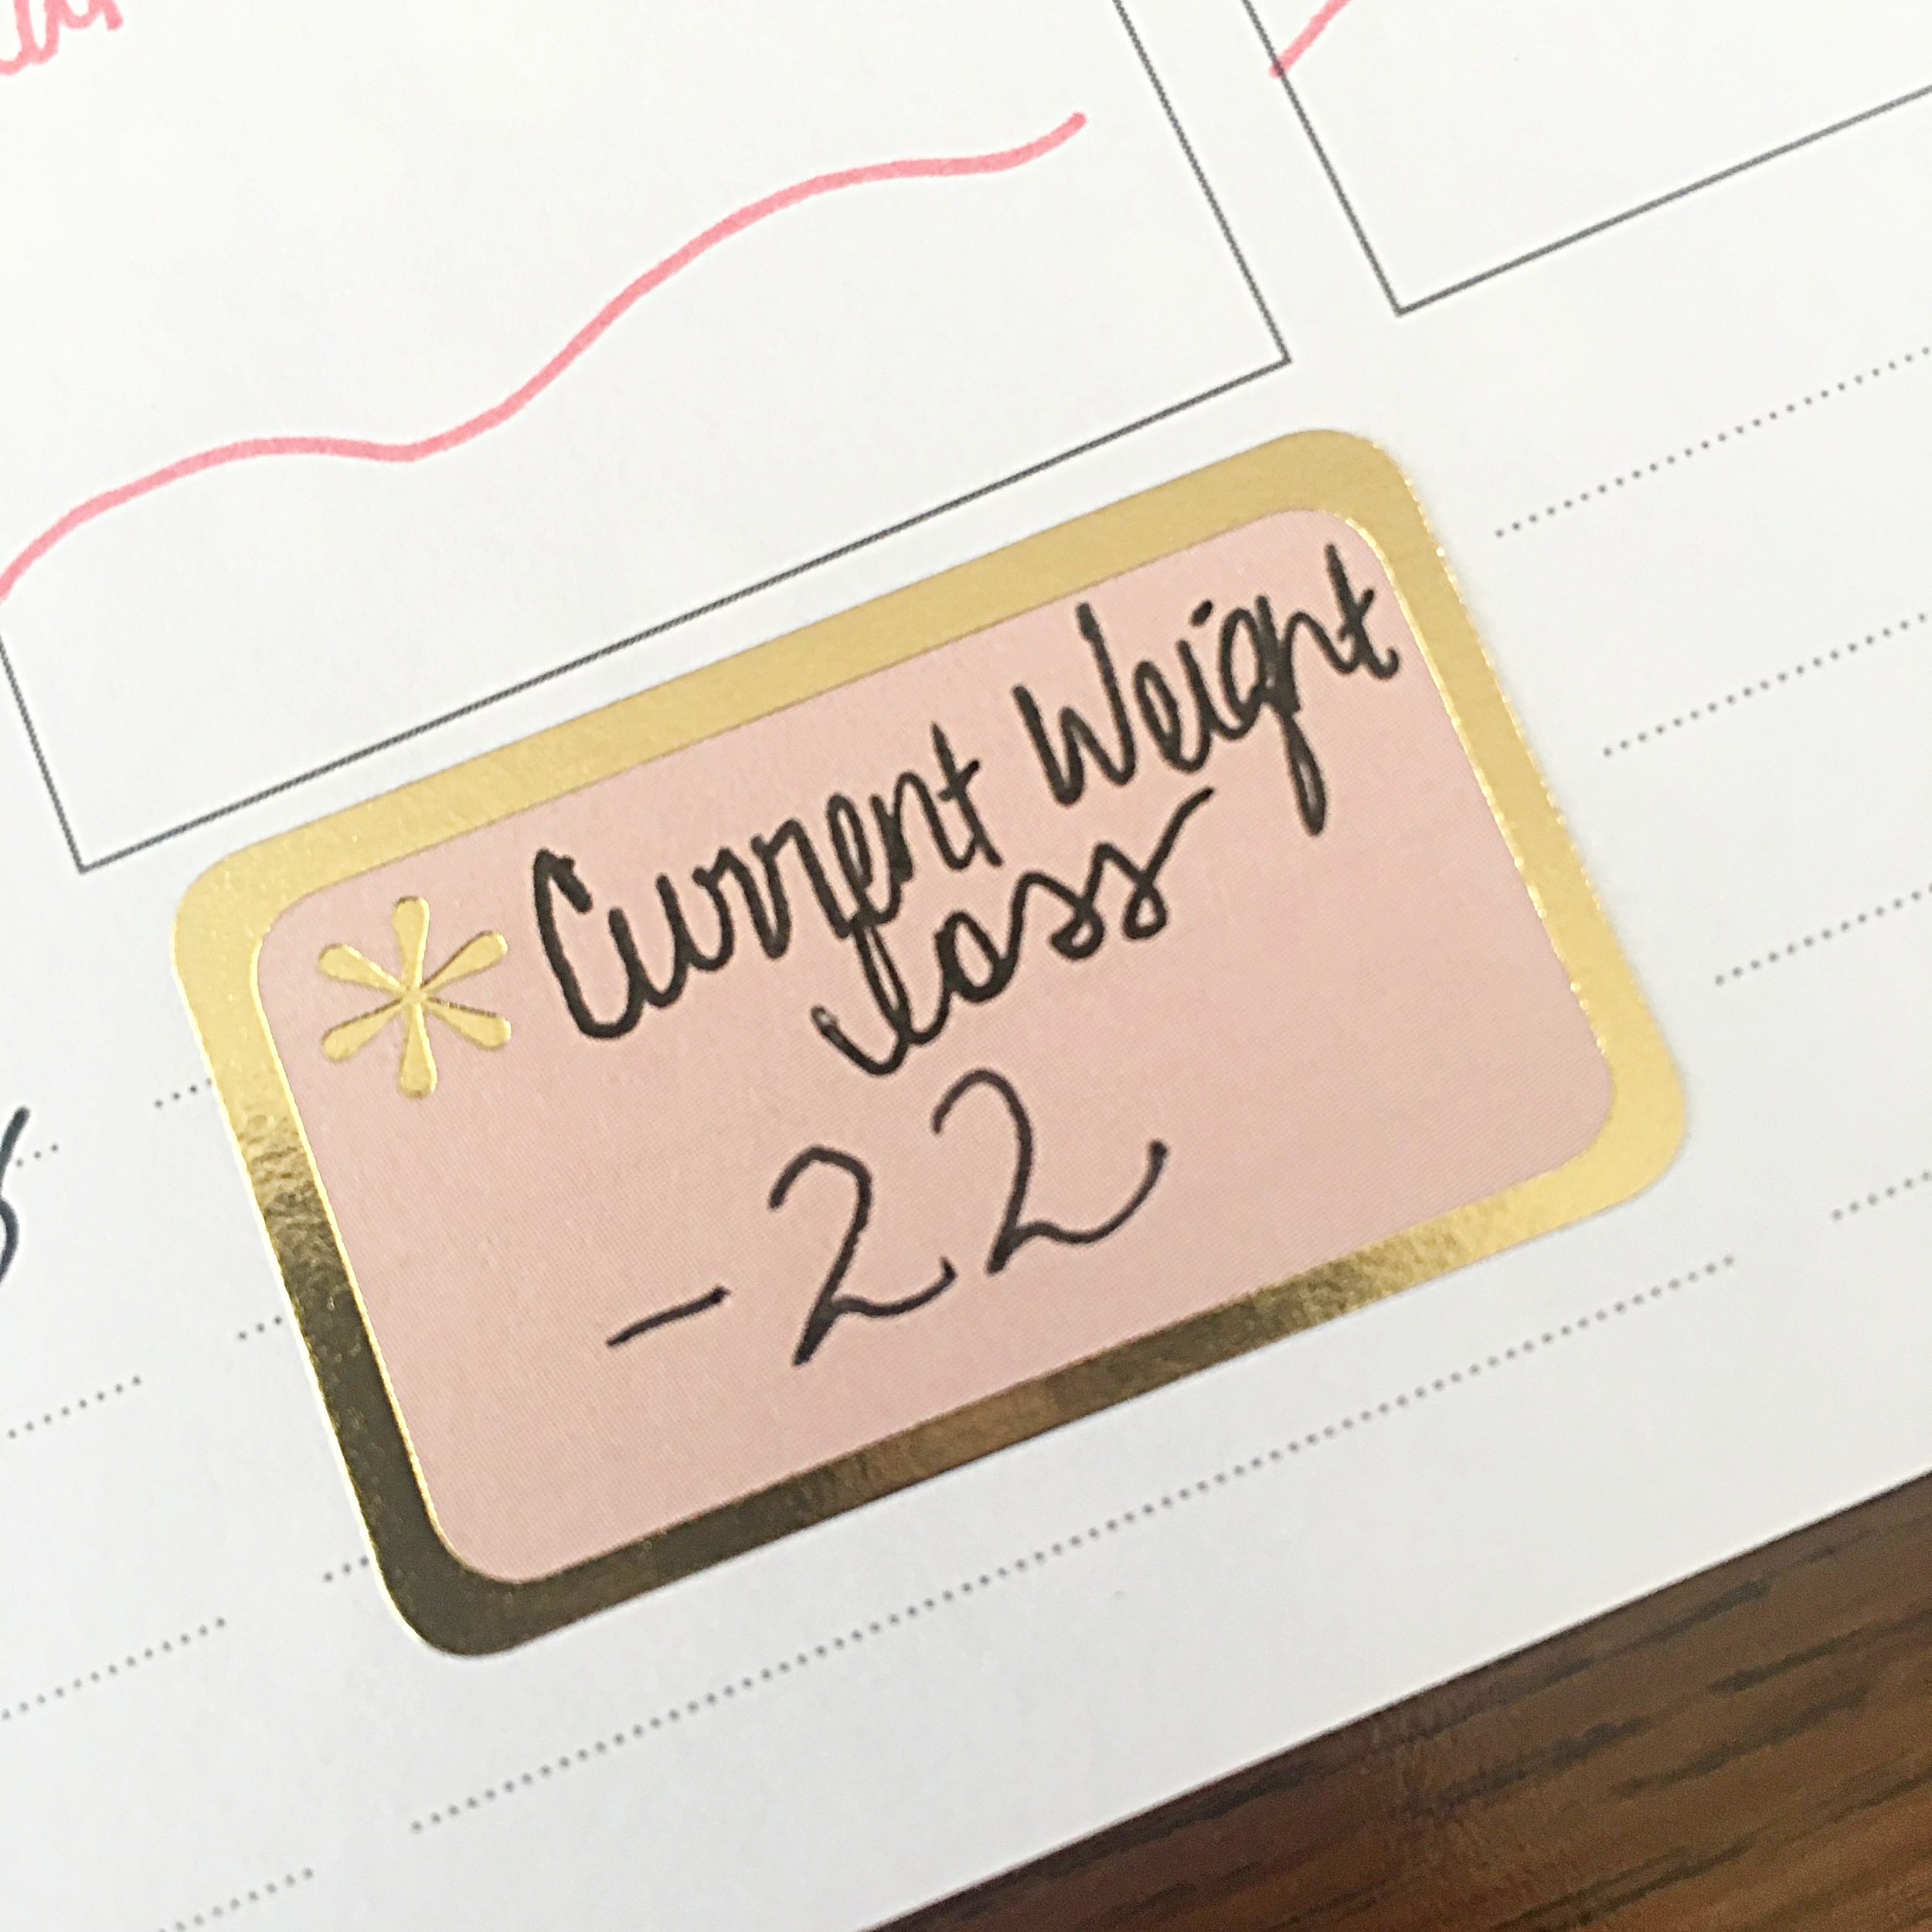 Yes, I also put this in my planner! :)